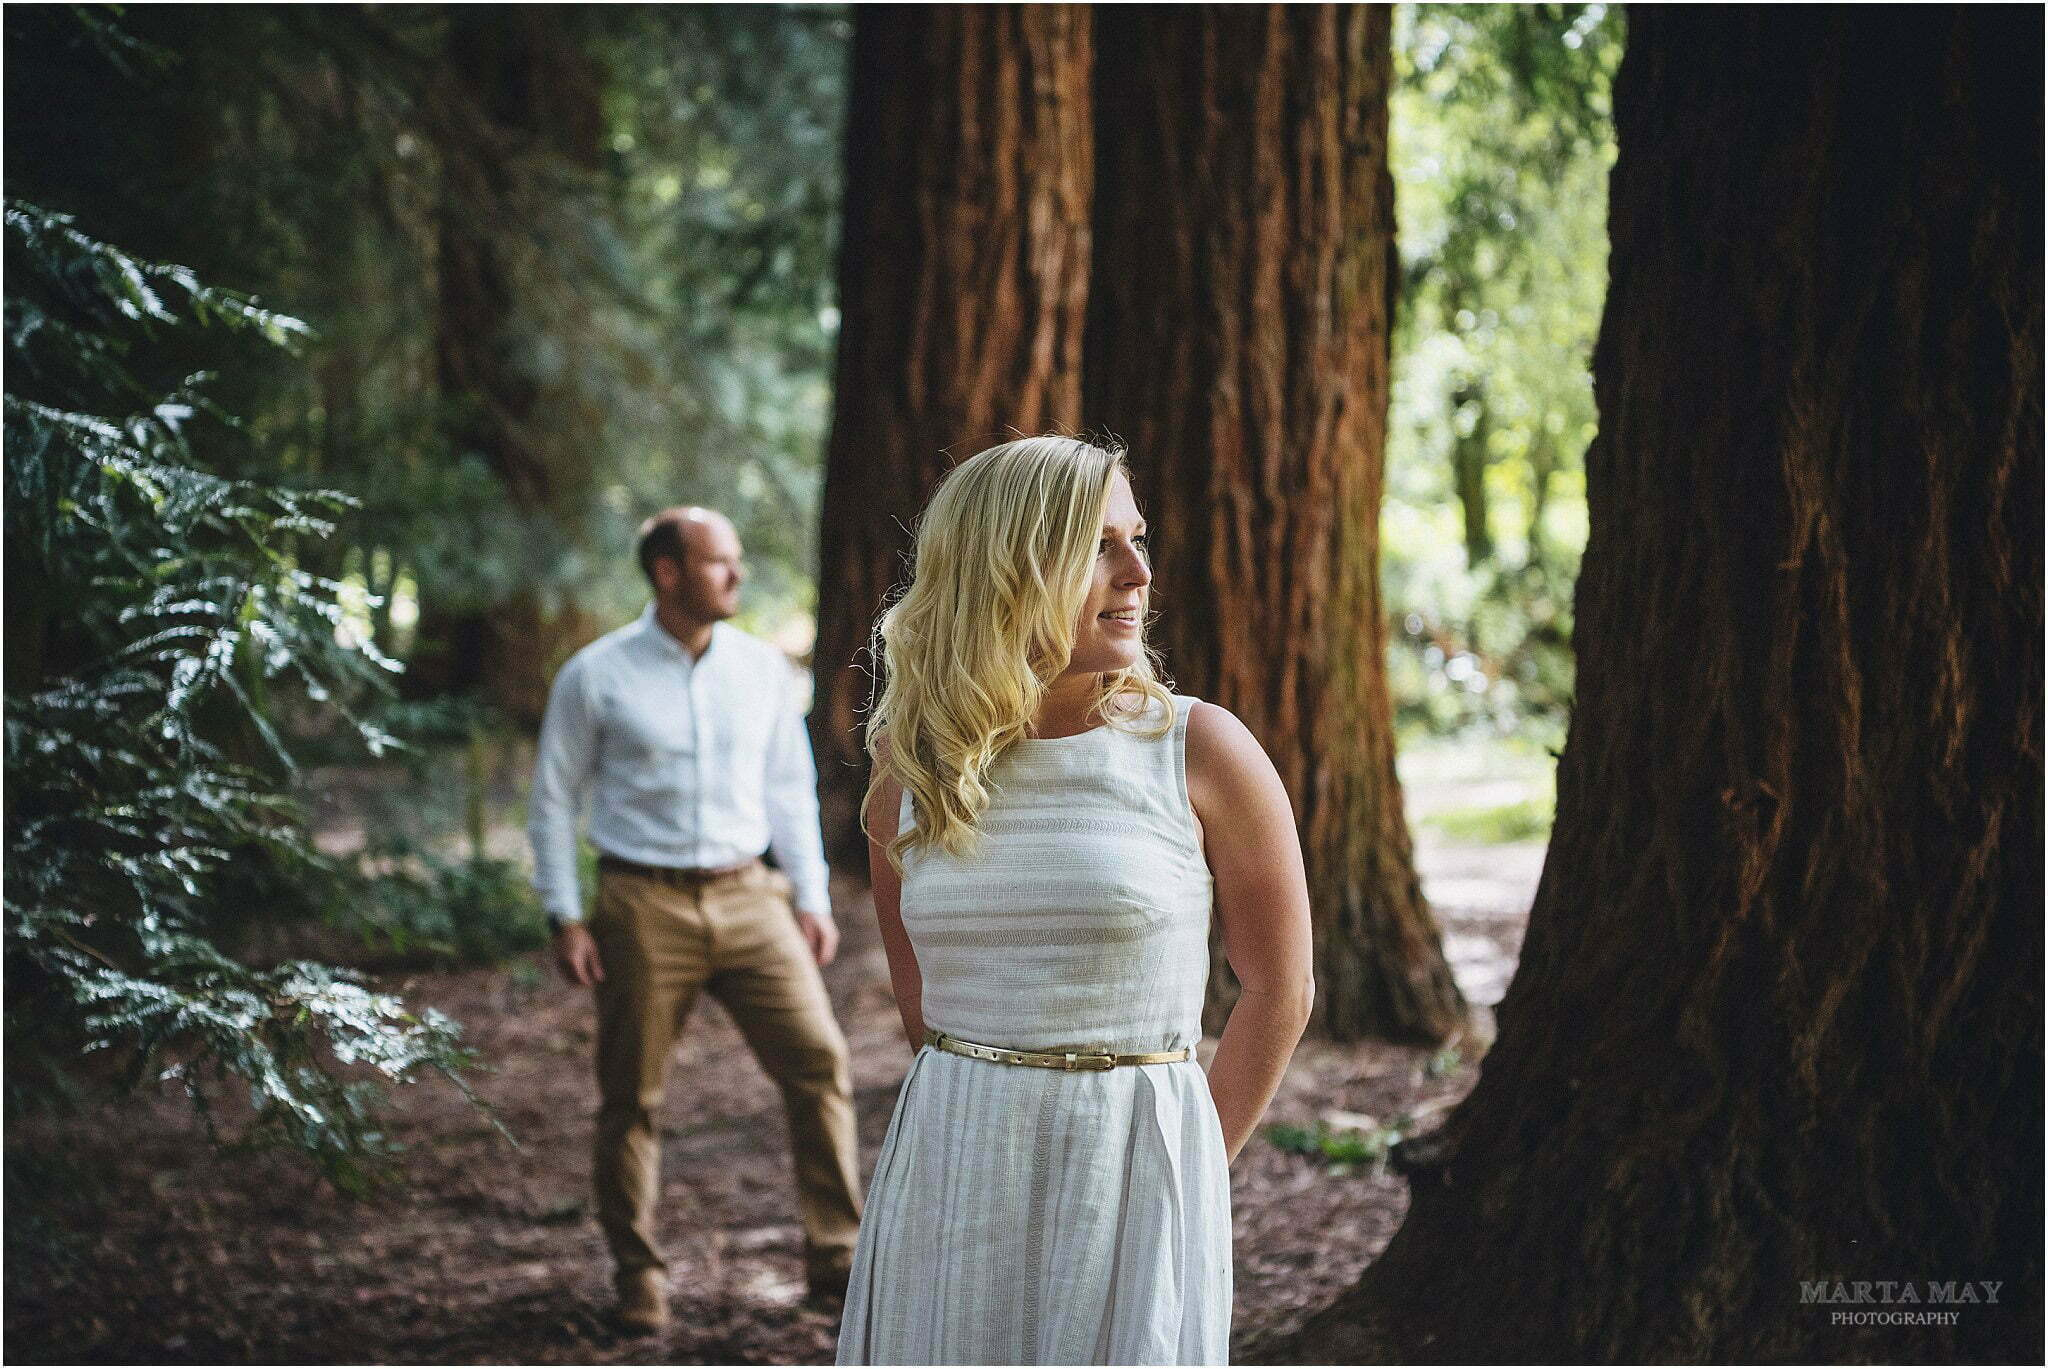 Queenswood engagement shoot